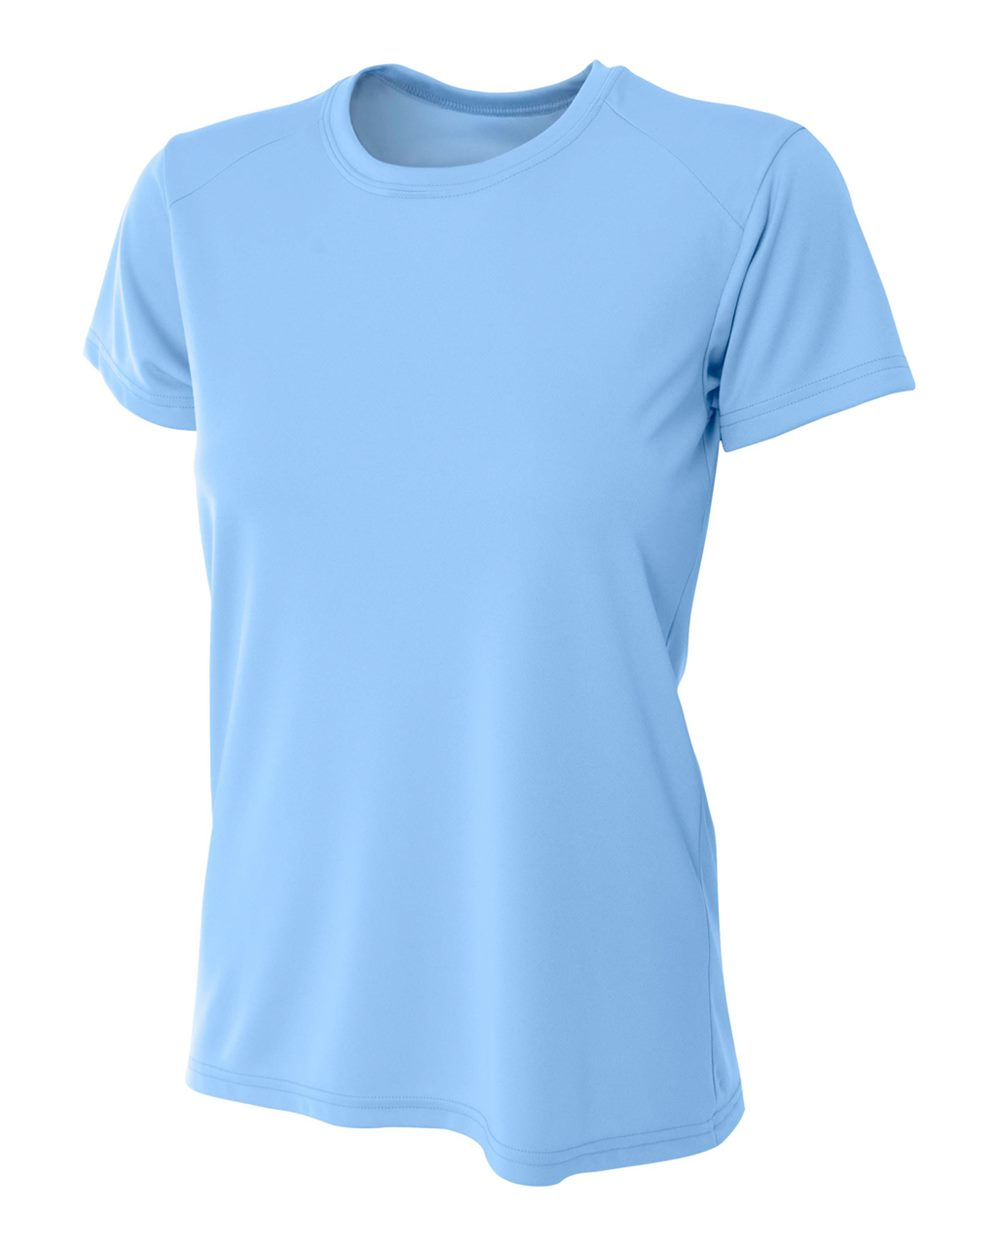 womens-polo-mwicking-light-blue.jpg